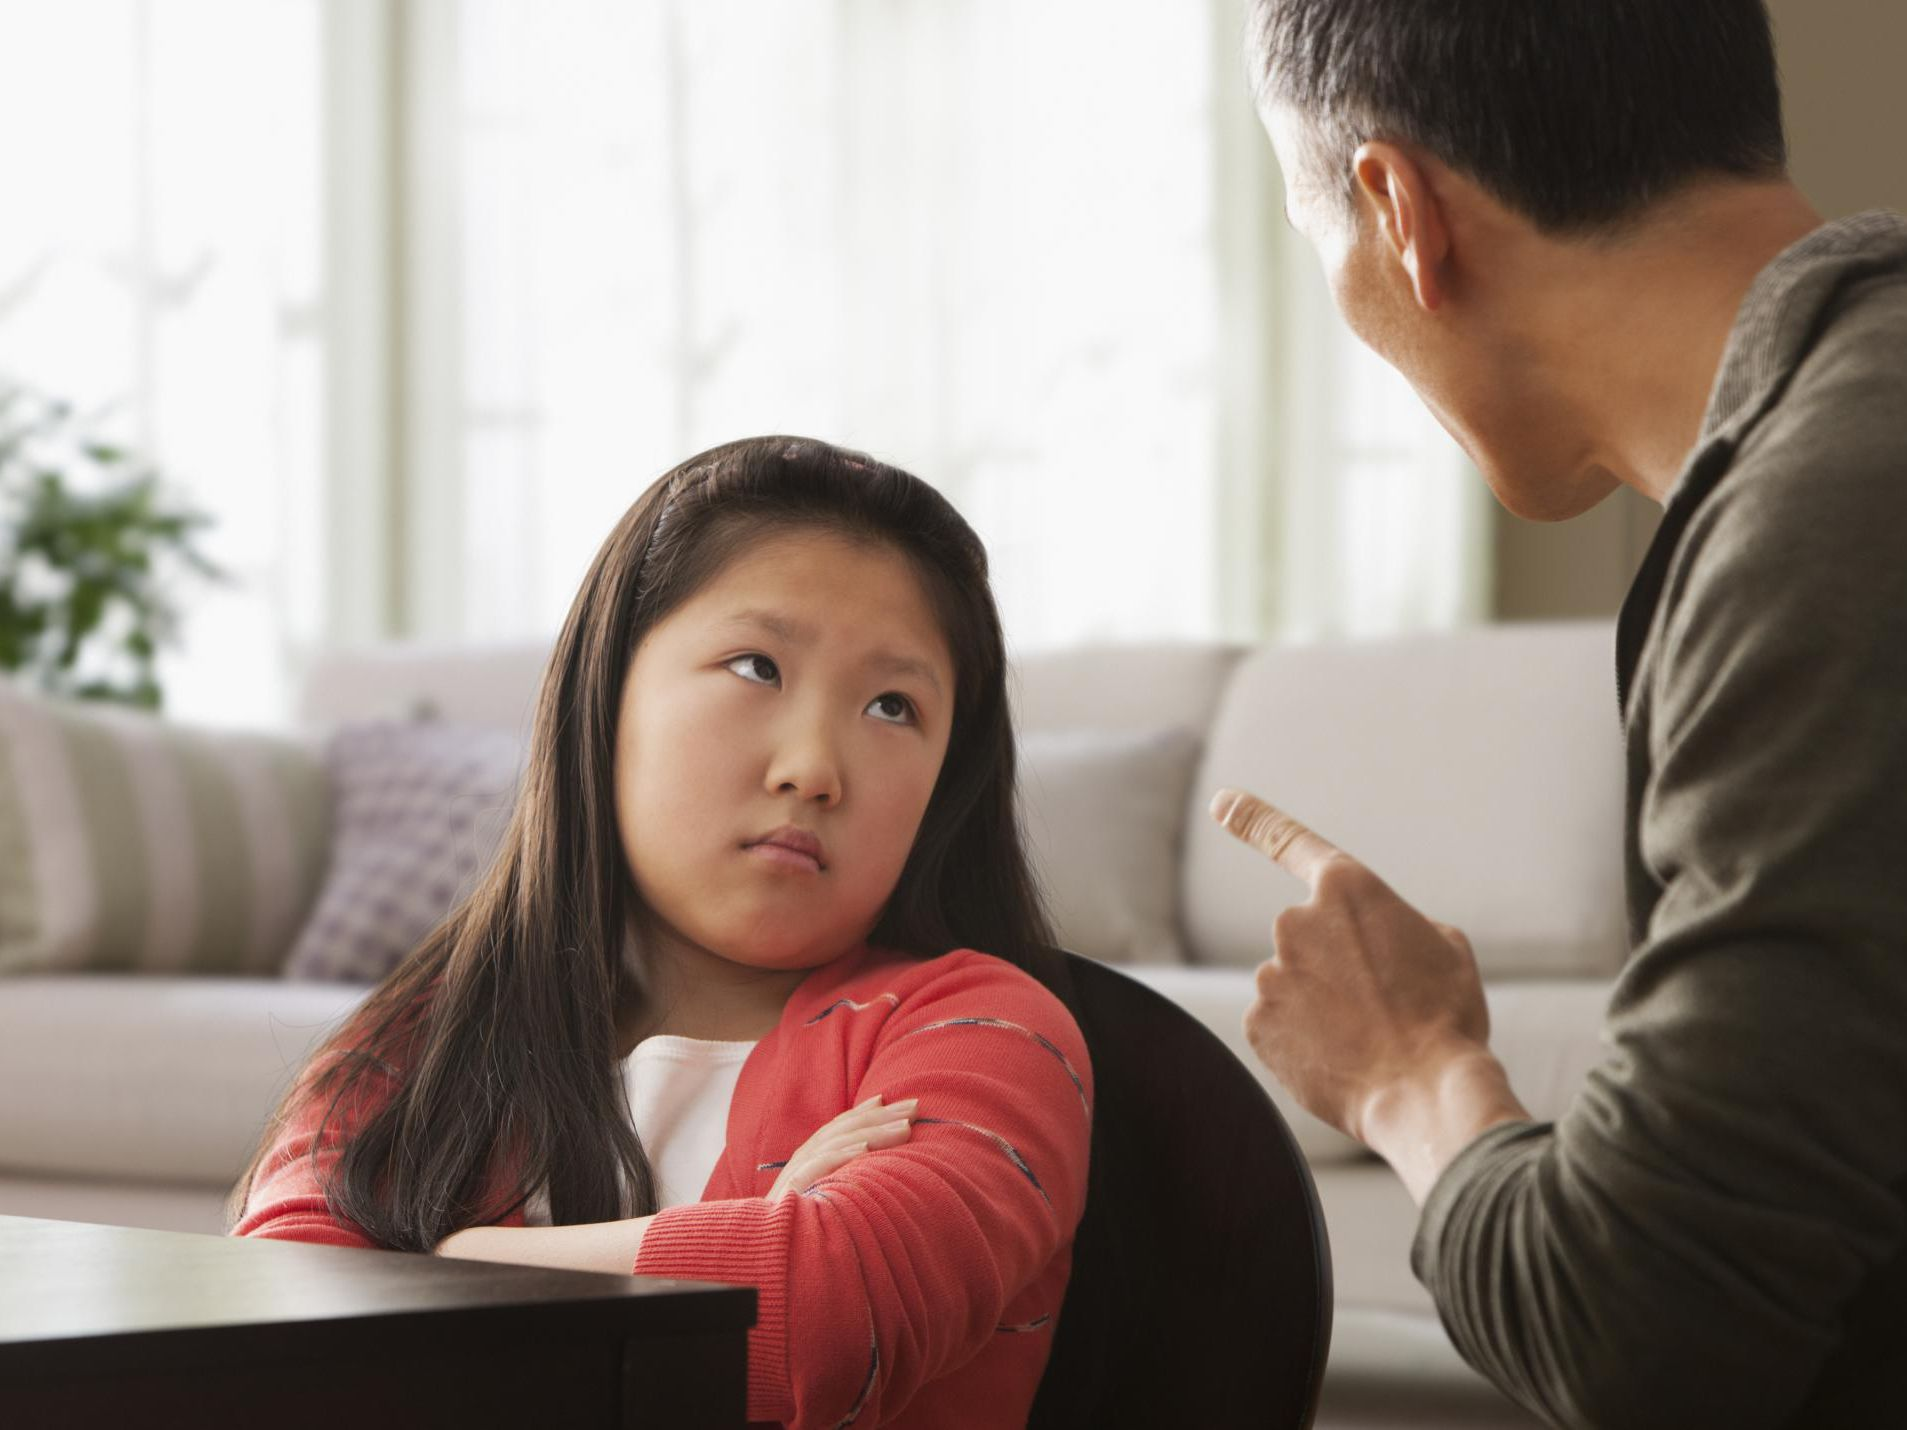 Common Child Behavior Problems and Their Solutions